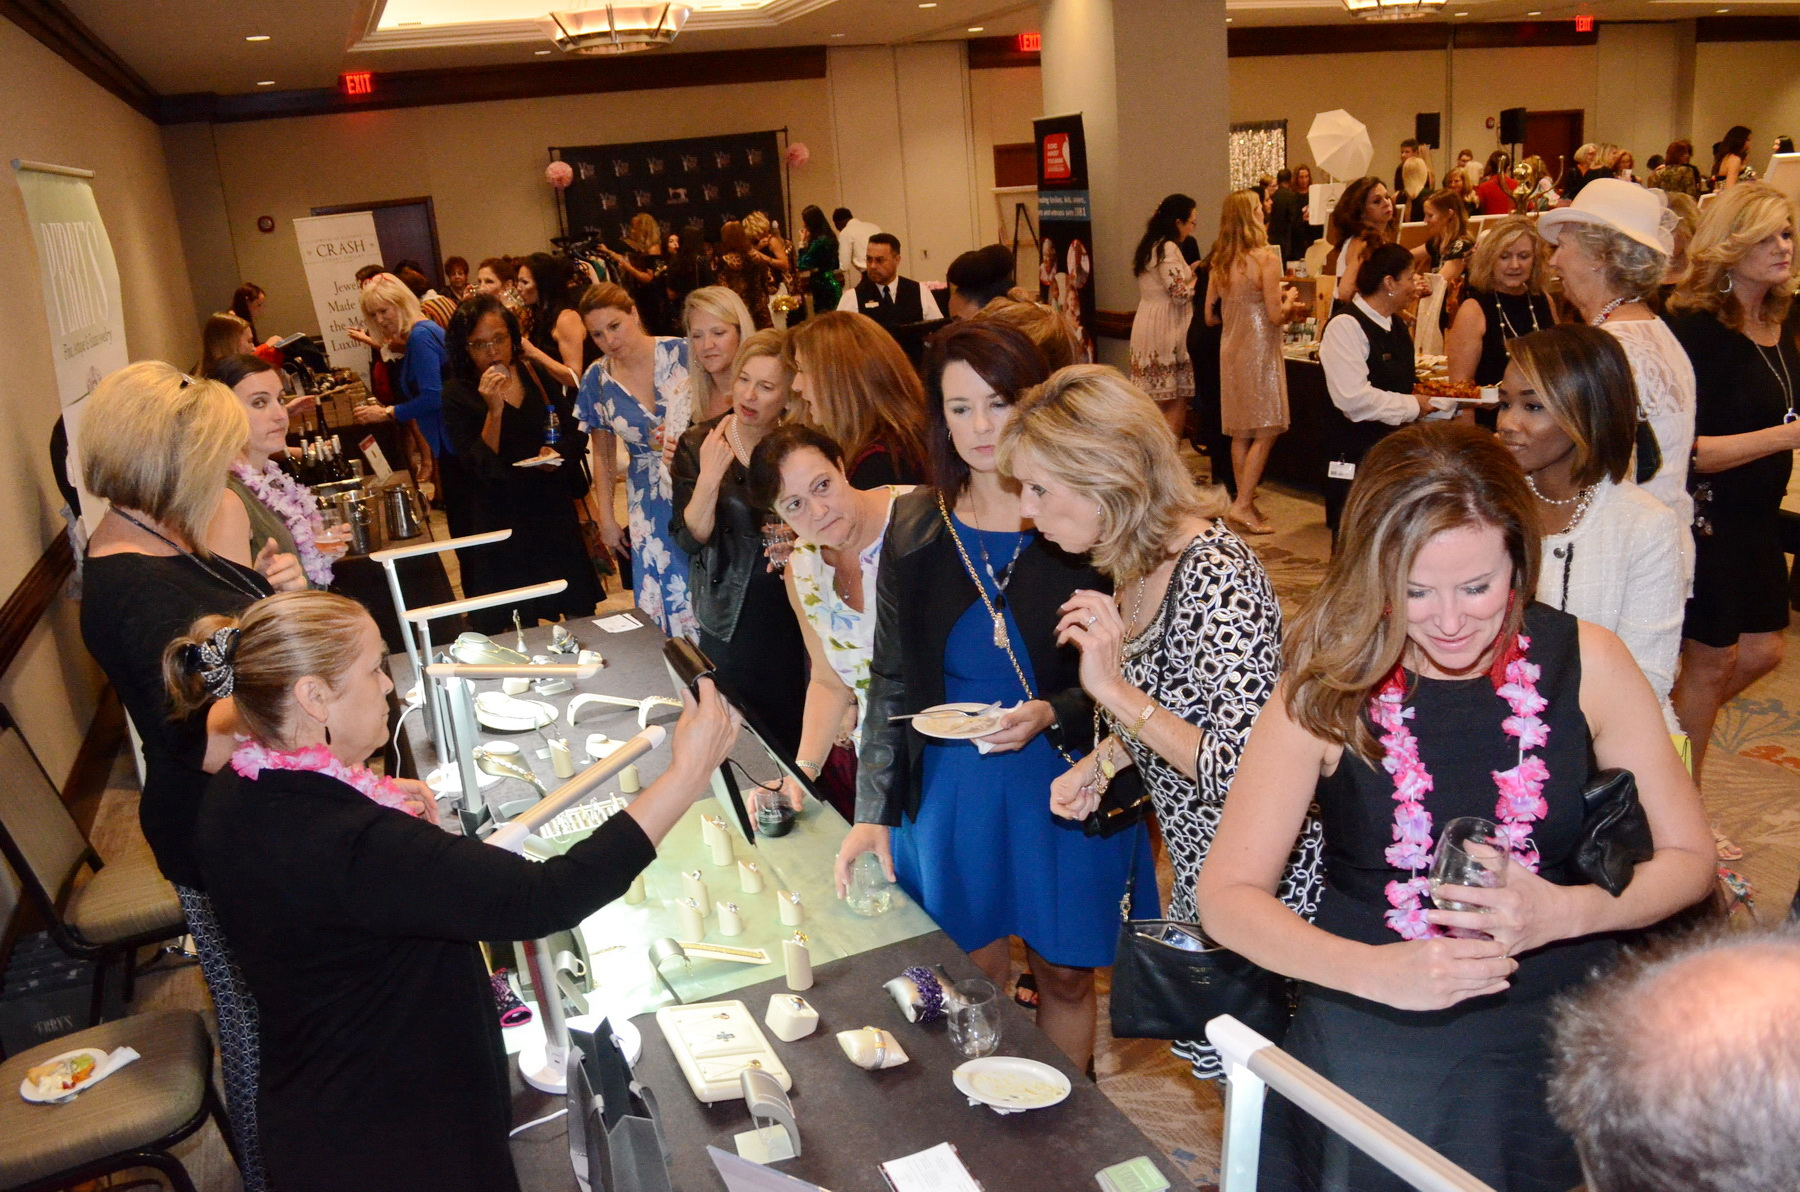 Guests shop at the Perry's Diamonds & Estate Jewelry booth.